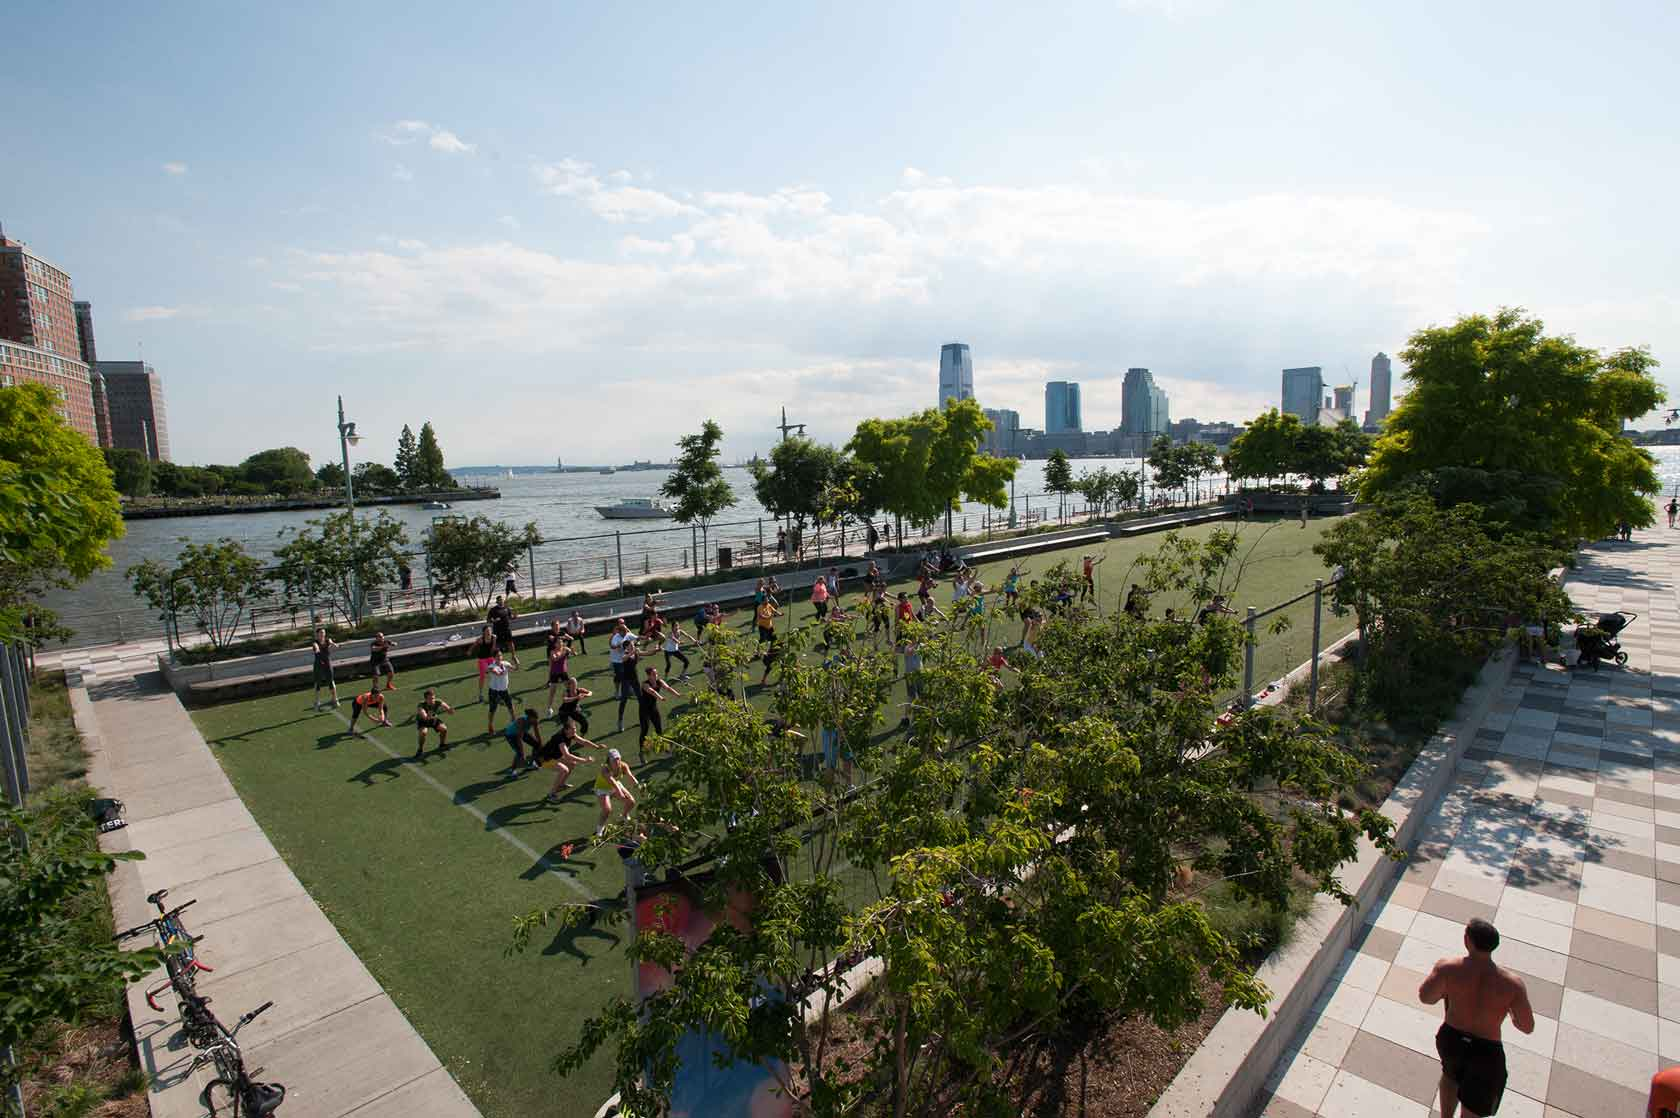 Park visitors get healthy and exercise on the field at Pier 25